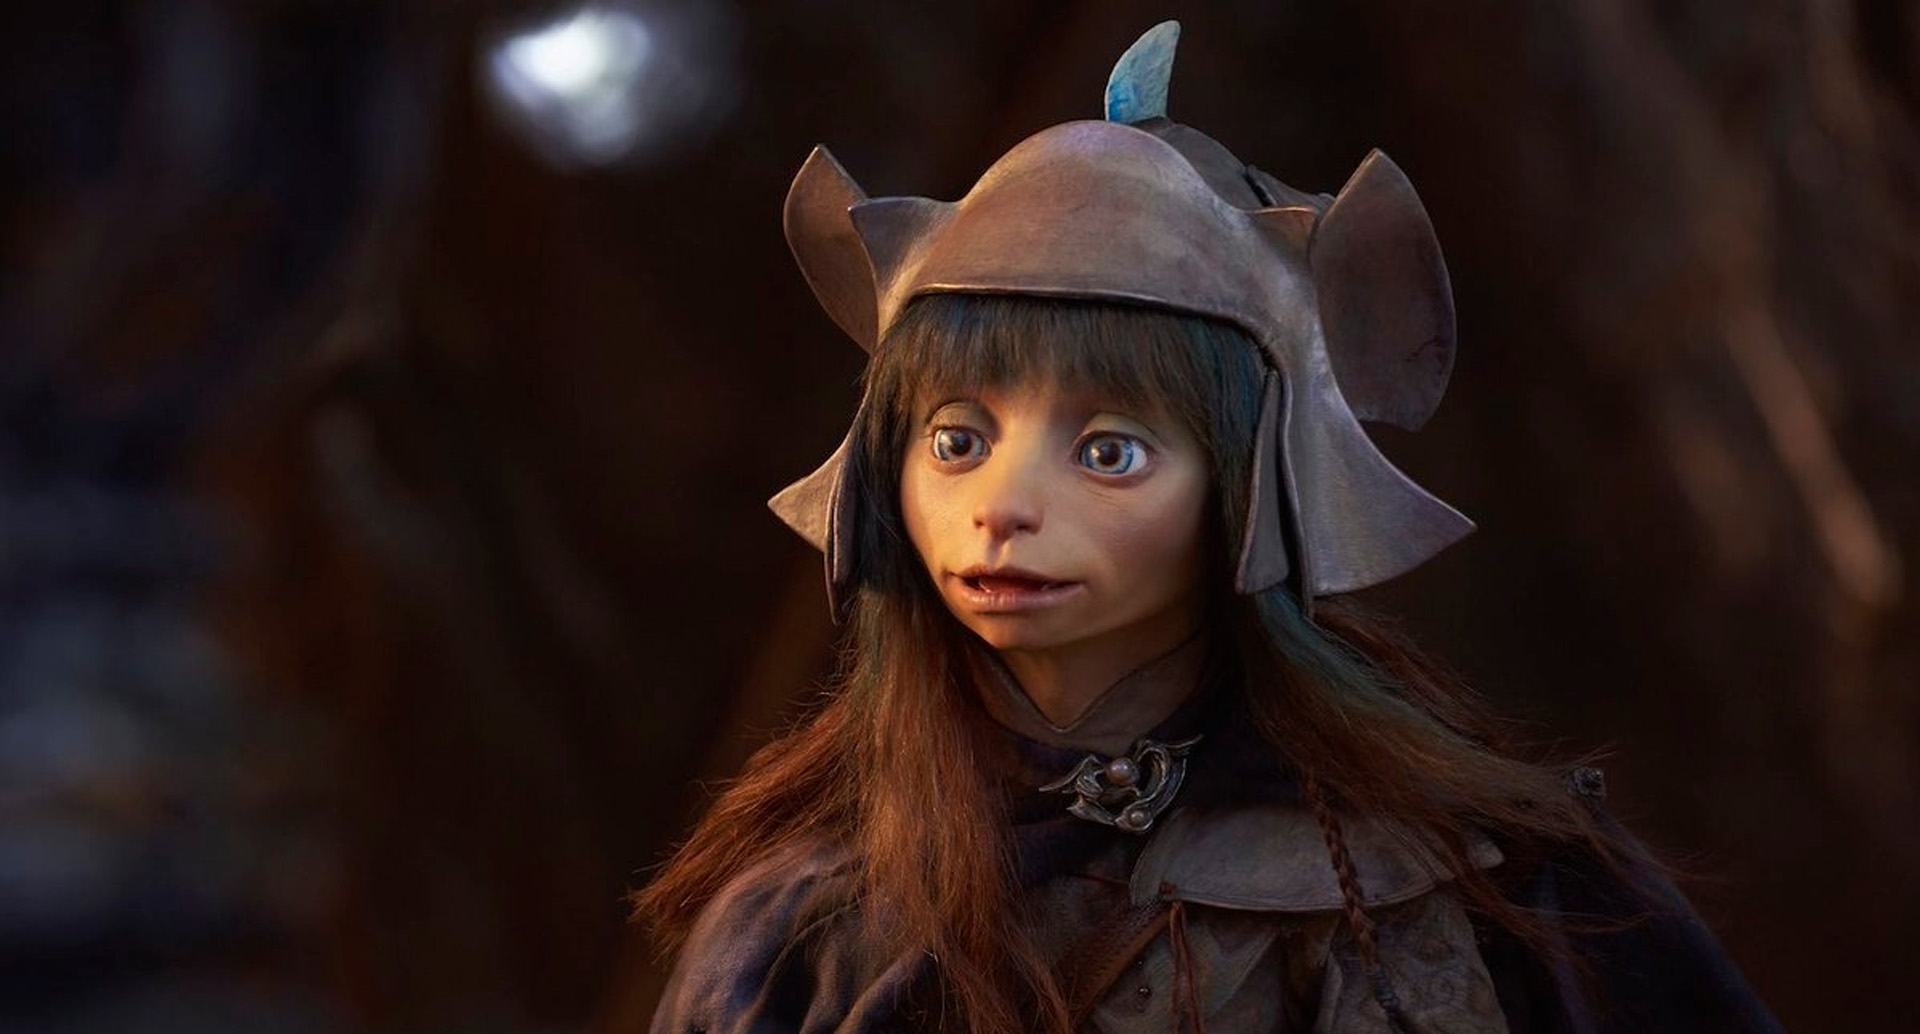 Netflix announced voice cast for the Dark Crystal prequel